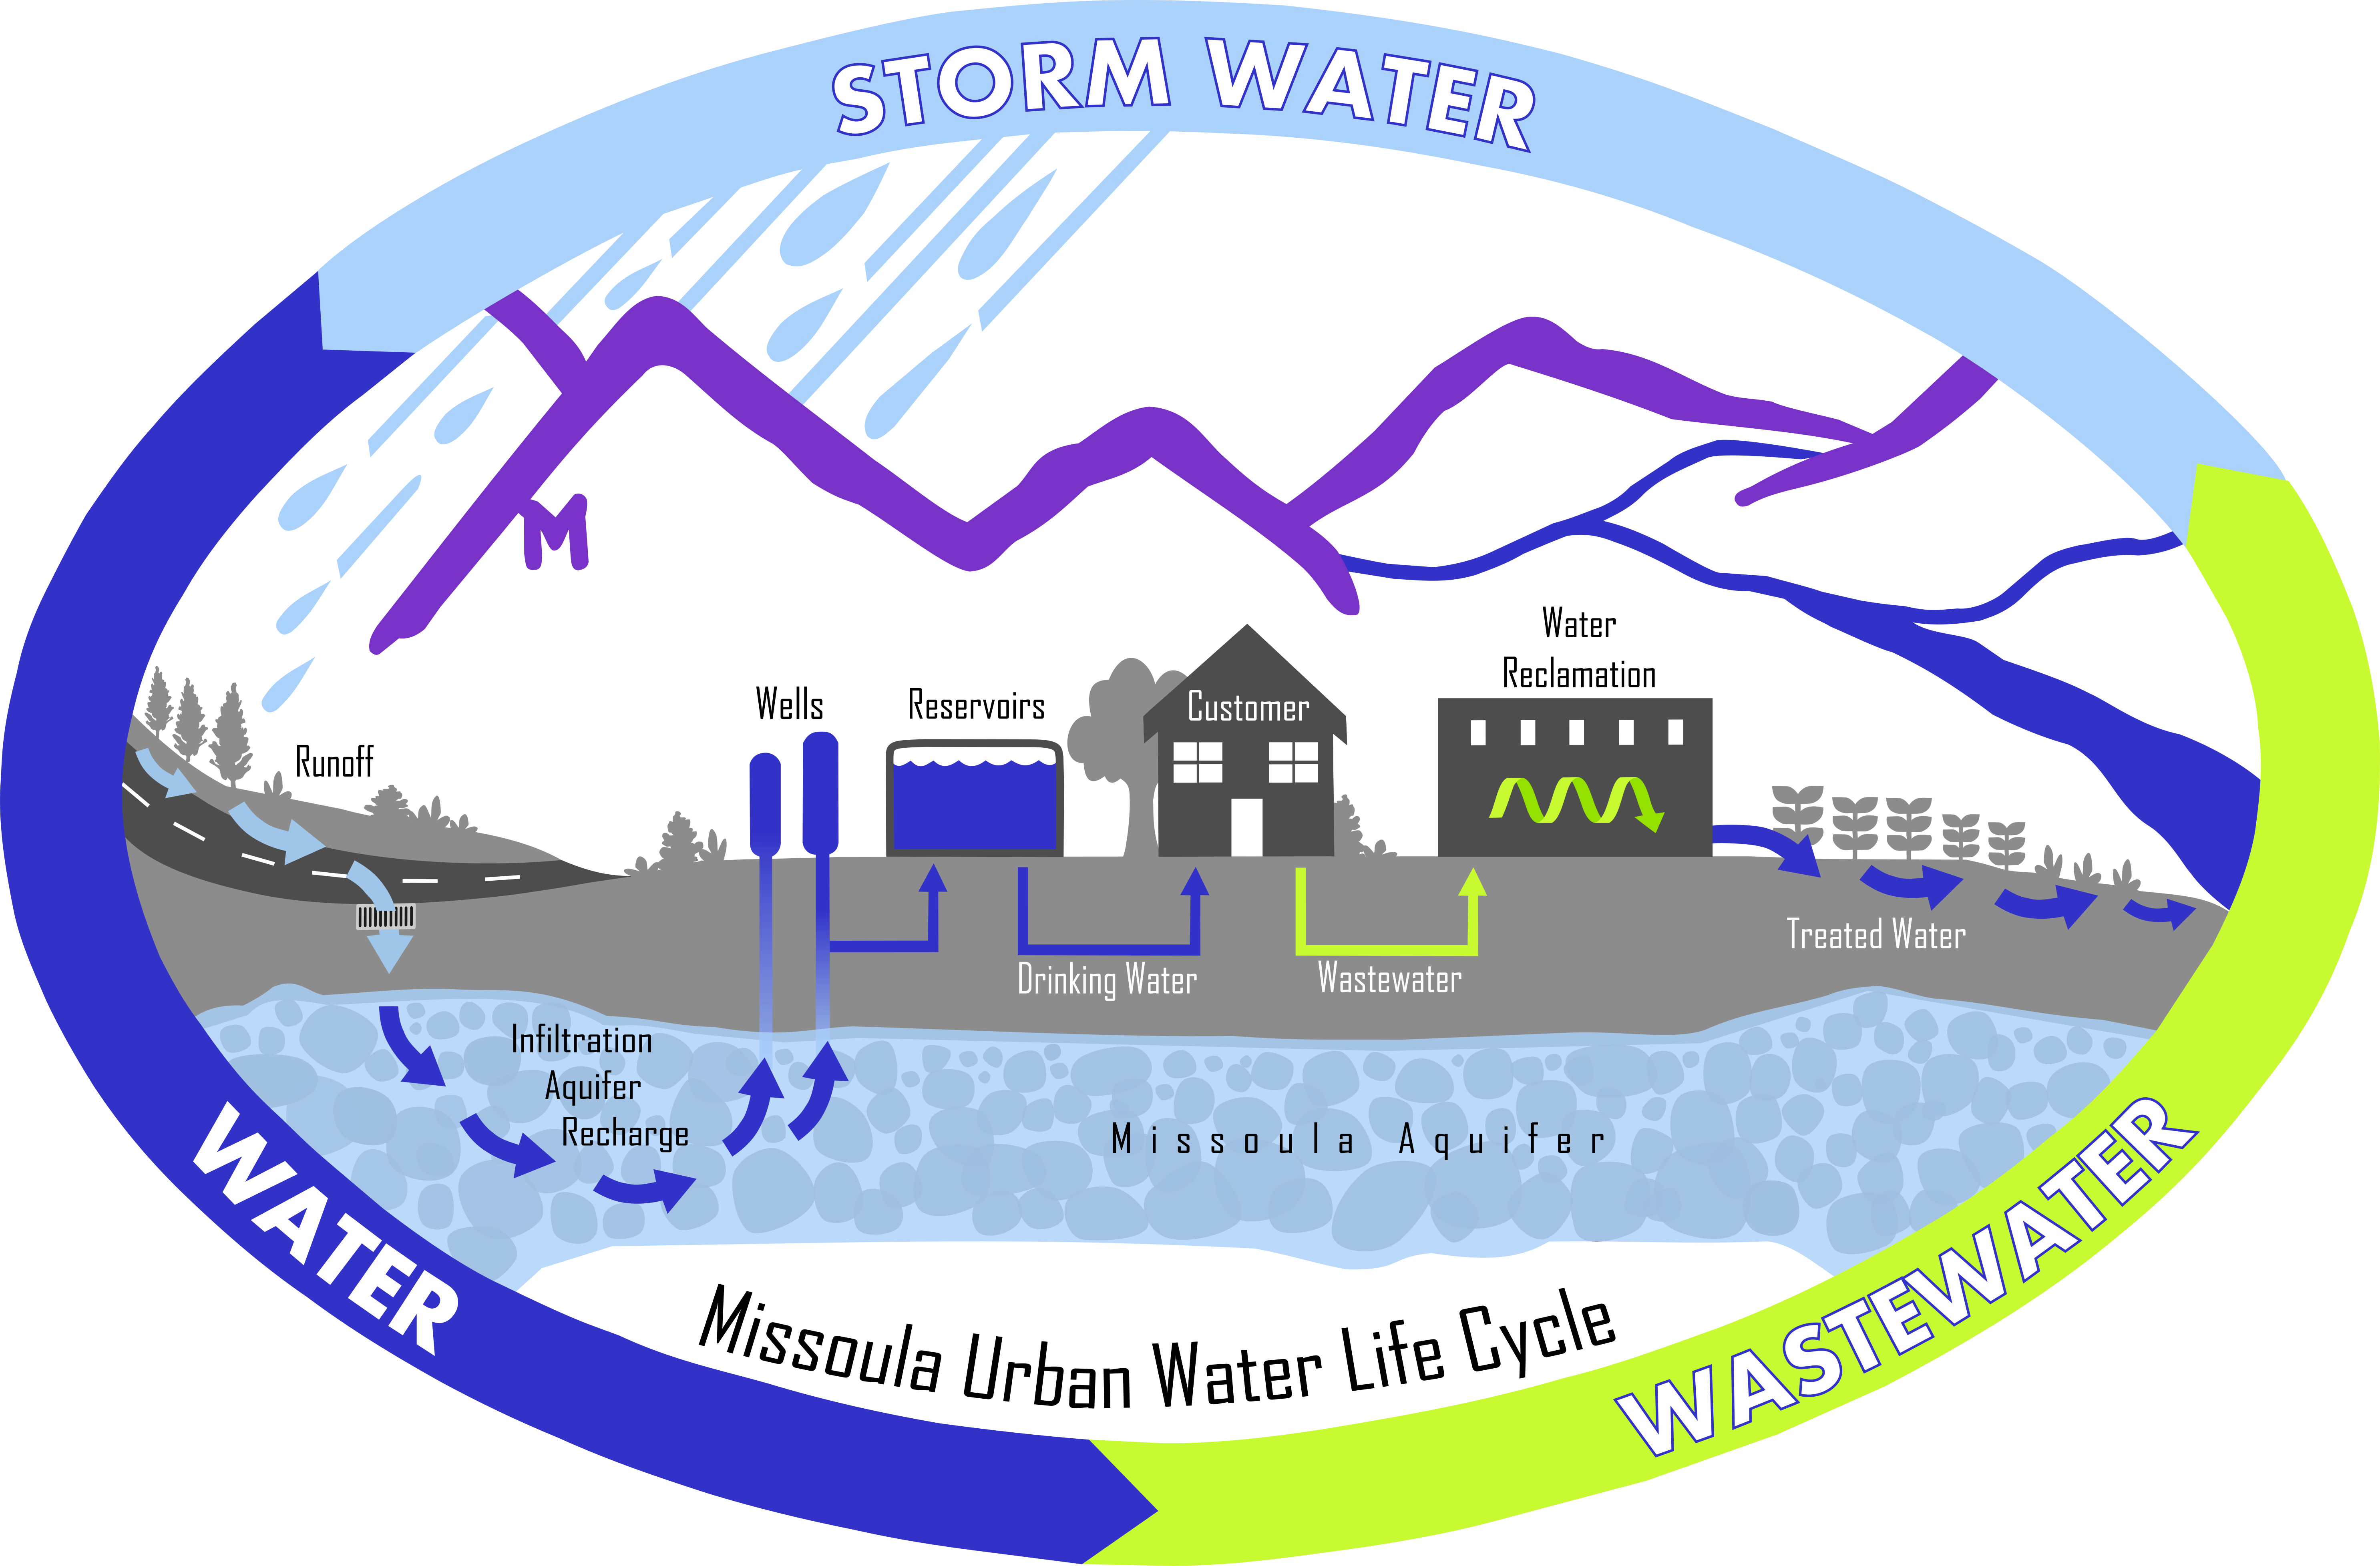 Missoula Urban Water Life Cycle process of Storm water, drinking water, and wastewater.